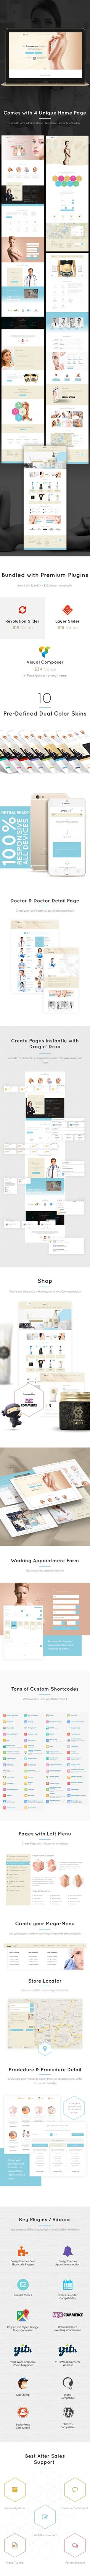 #1 Medical WordPress Theme for Plastic Surgeons and Cosmetic Clinics Searching for a Medical & Health theme for your Cosmetic Clinic or Plastic Surgery Website? One Life is a versatile theme that i...